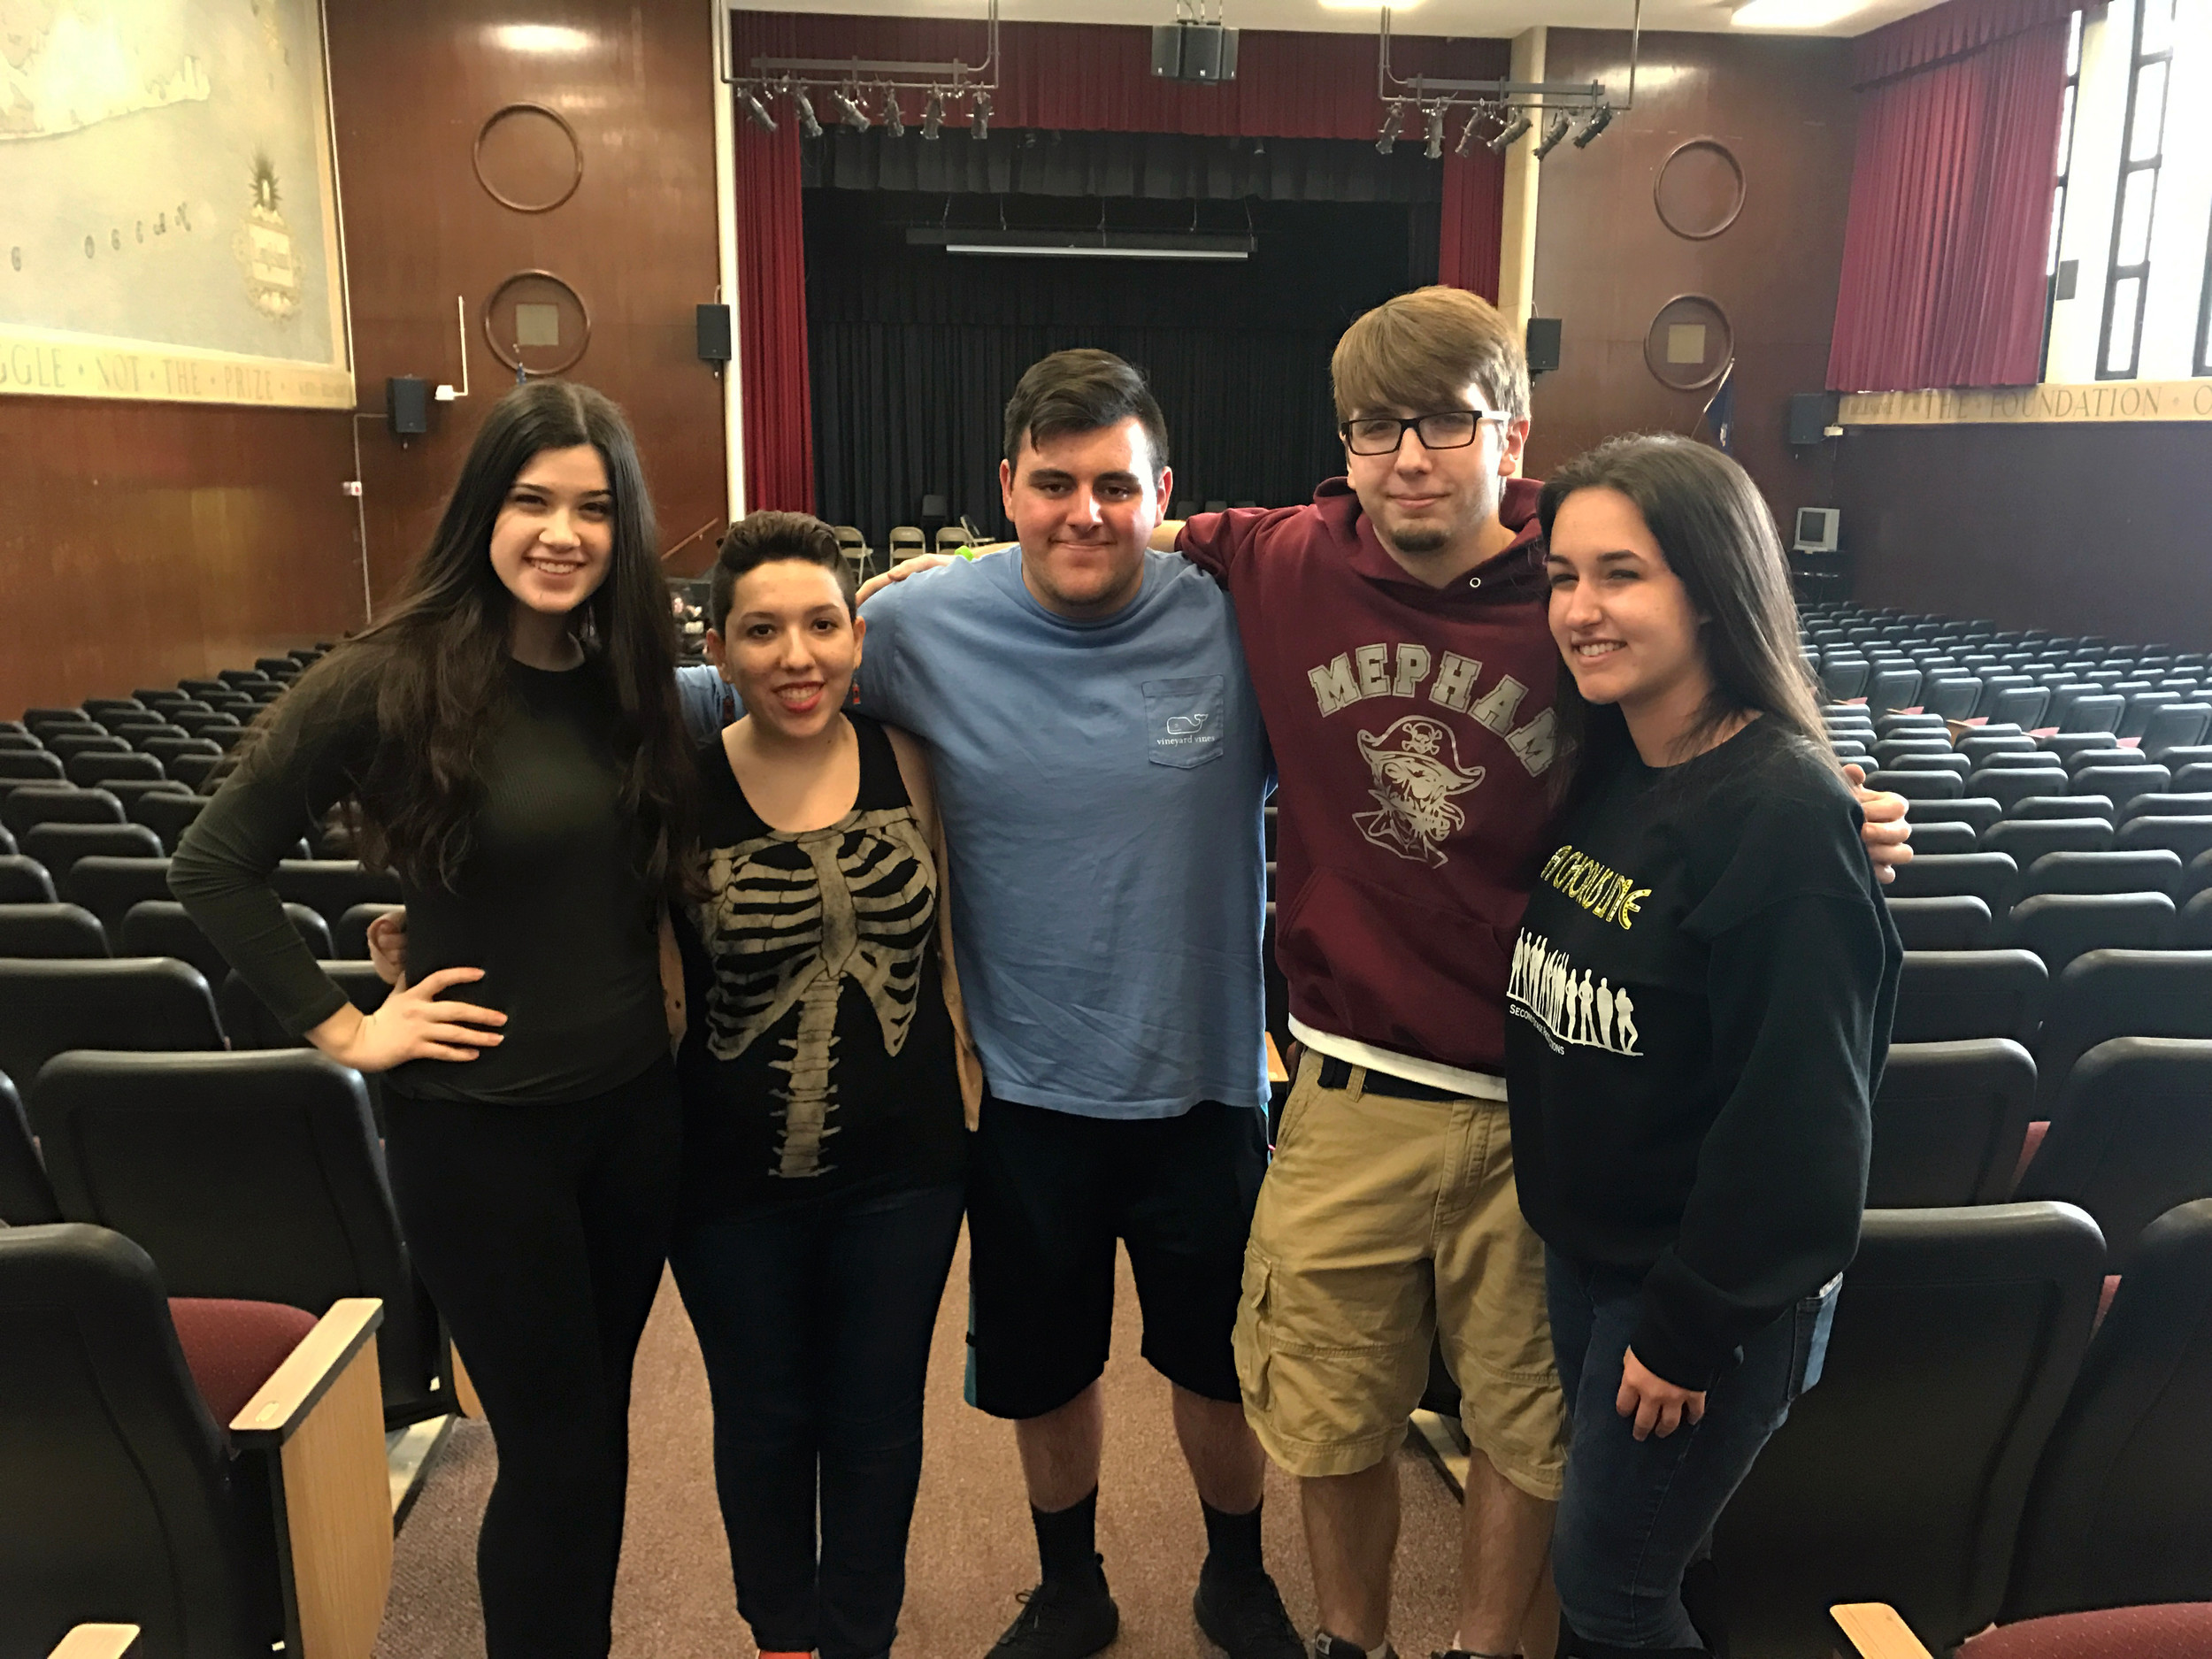 Edward Grosskreuz, Director. Alaina Ciorra, Robbie Commisso, Sam Pepe, Mike Pioli and Melissa Ponton, 12, spoke with the Herald about their upcoming spring musical.